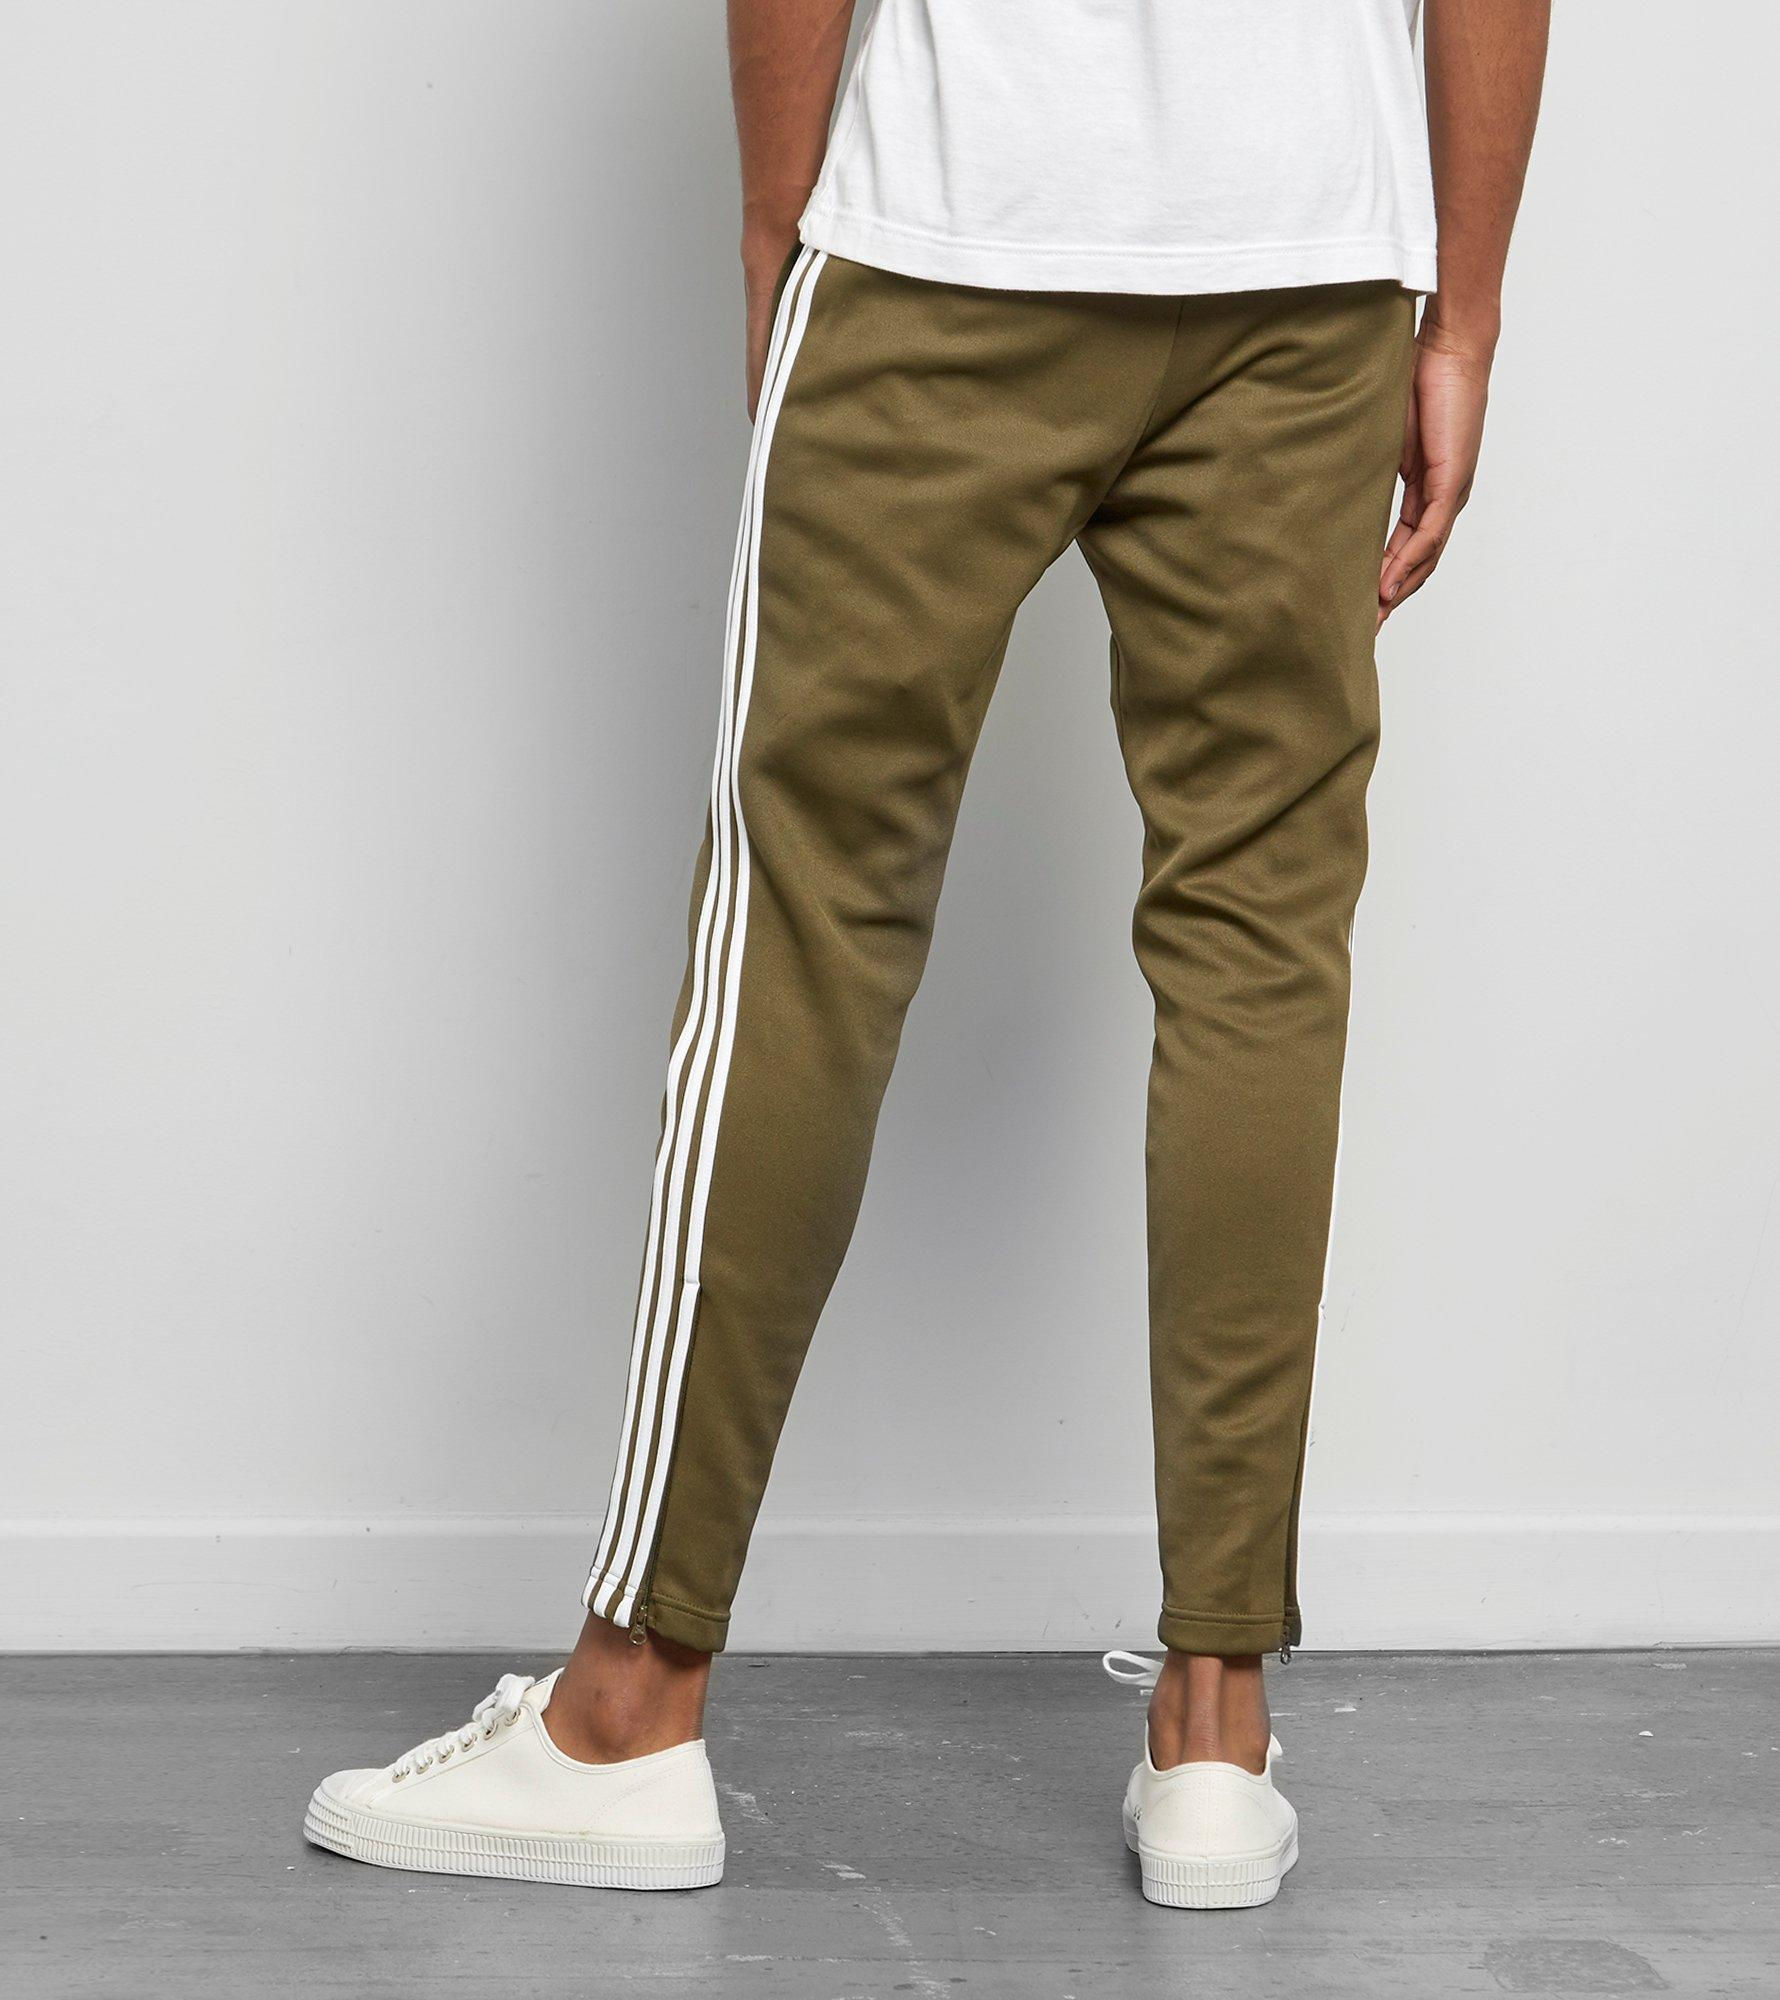 sports shoes 69fe2 bc92a adidas Originals Superstar Taper Track Pant - Size  Exclusive in ...